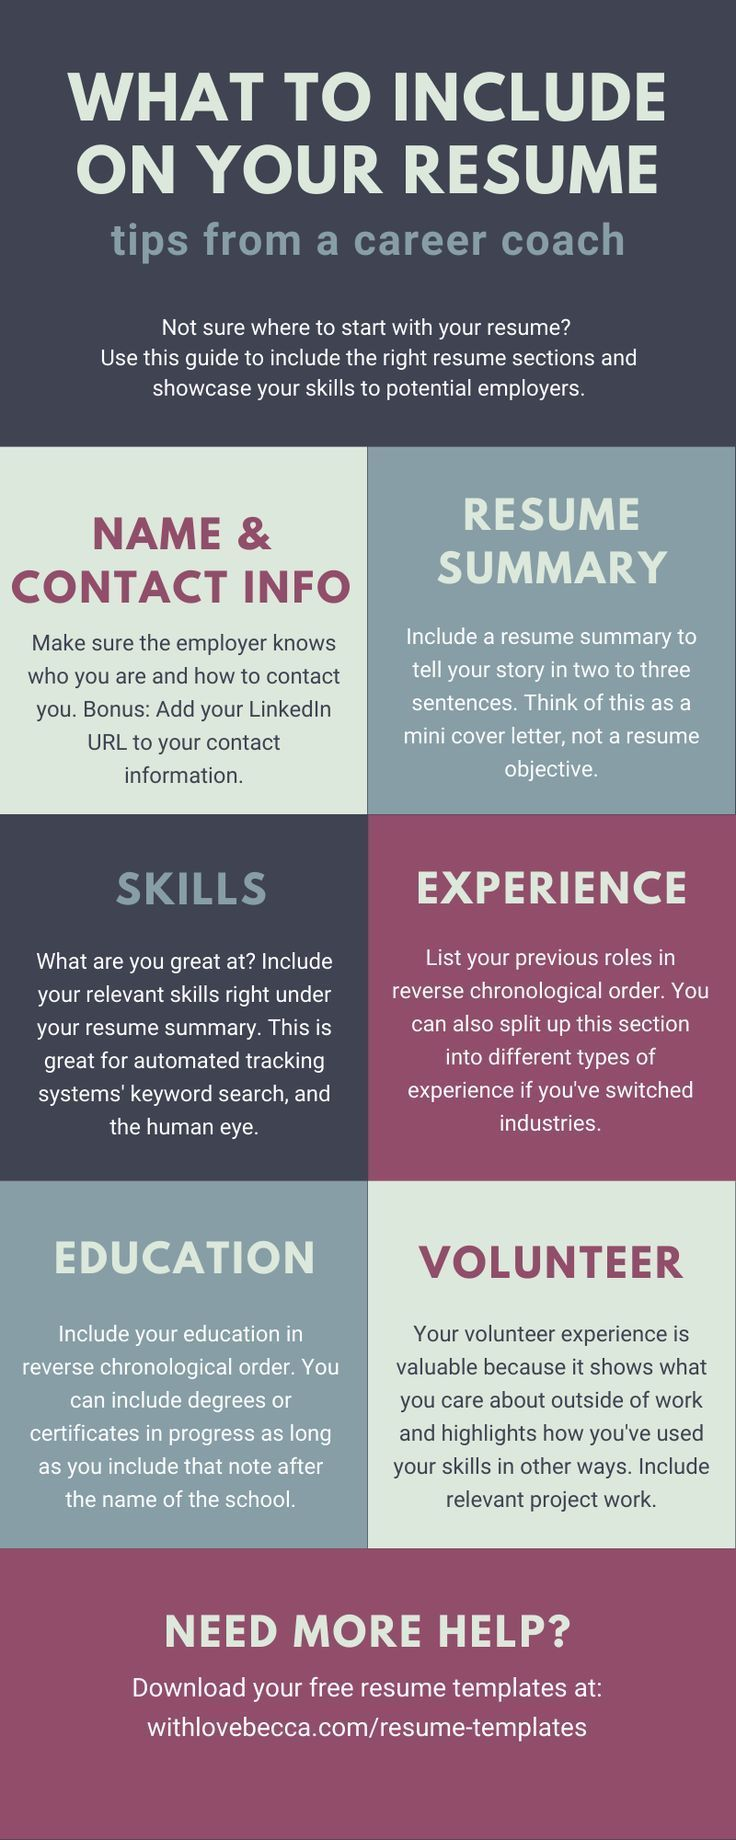 Resume Templates With Love Becca